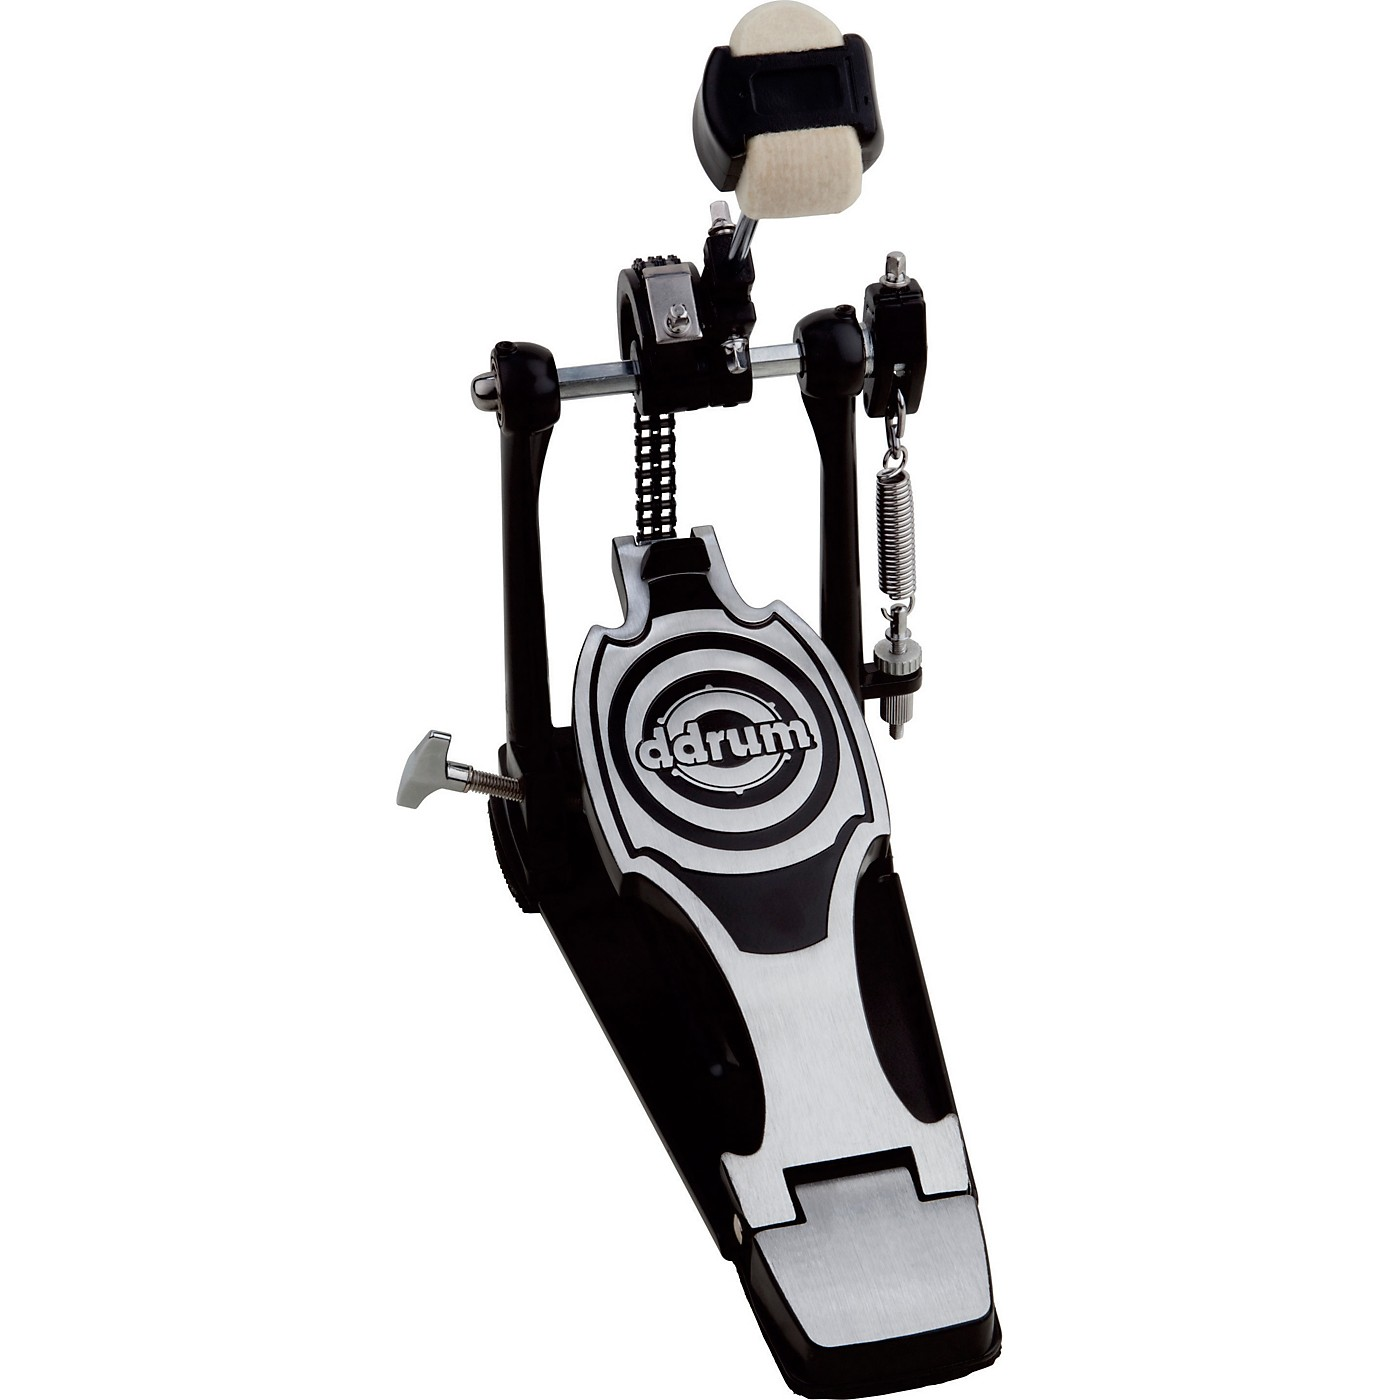 ddrum RX Series Single Bass Drum Pedal thumbnail